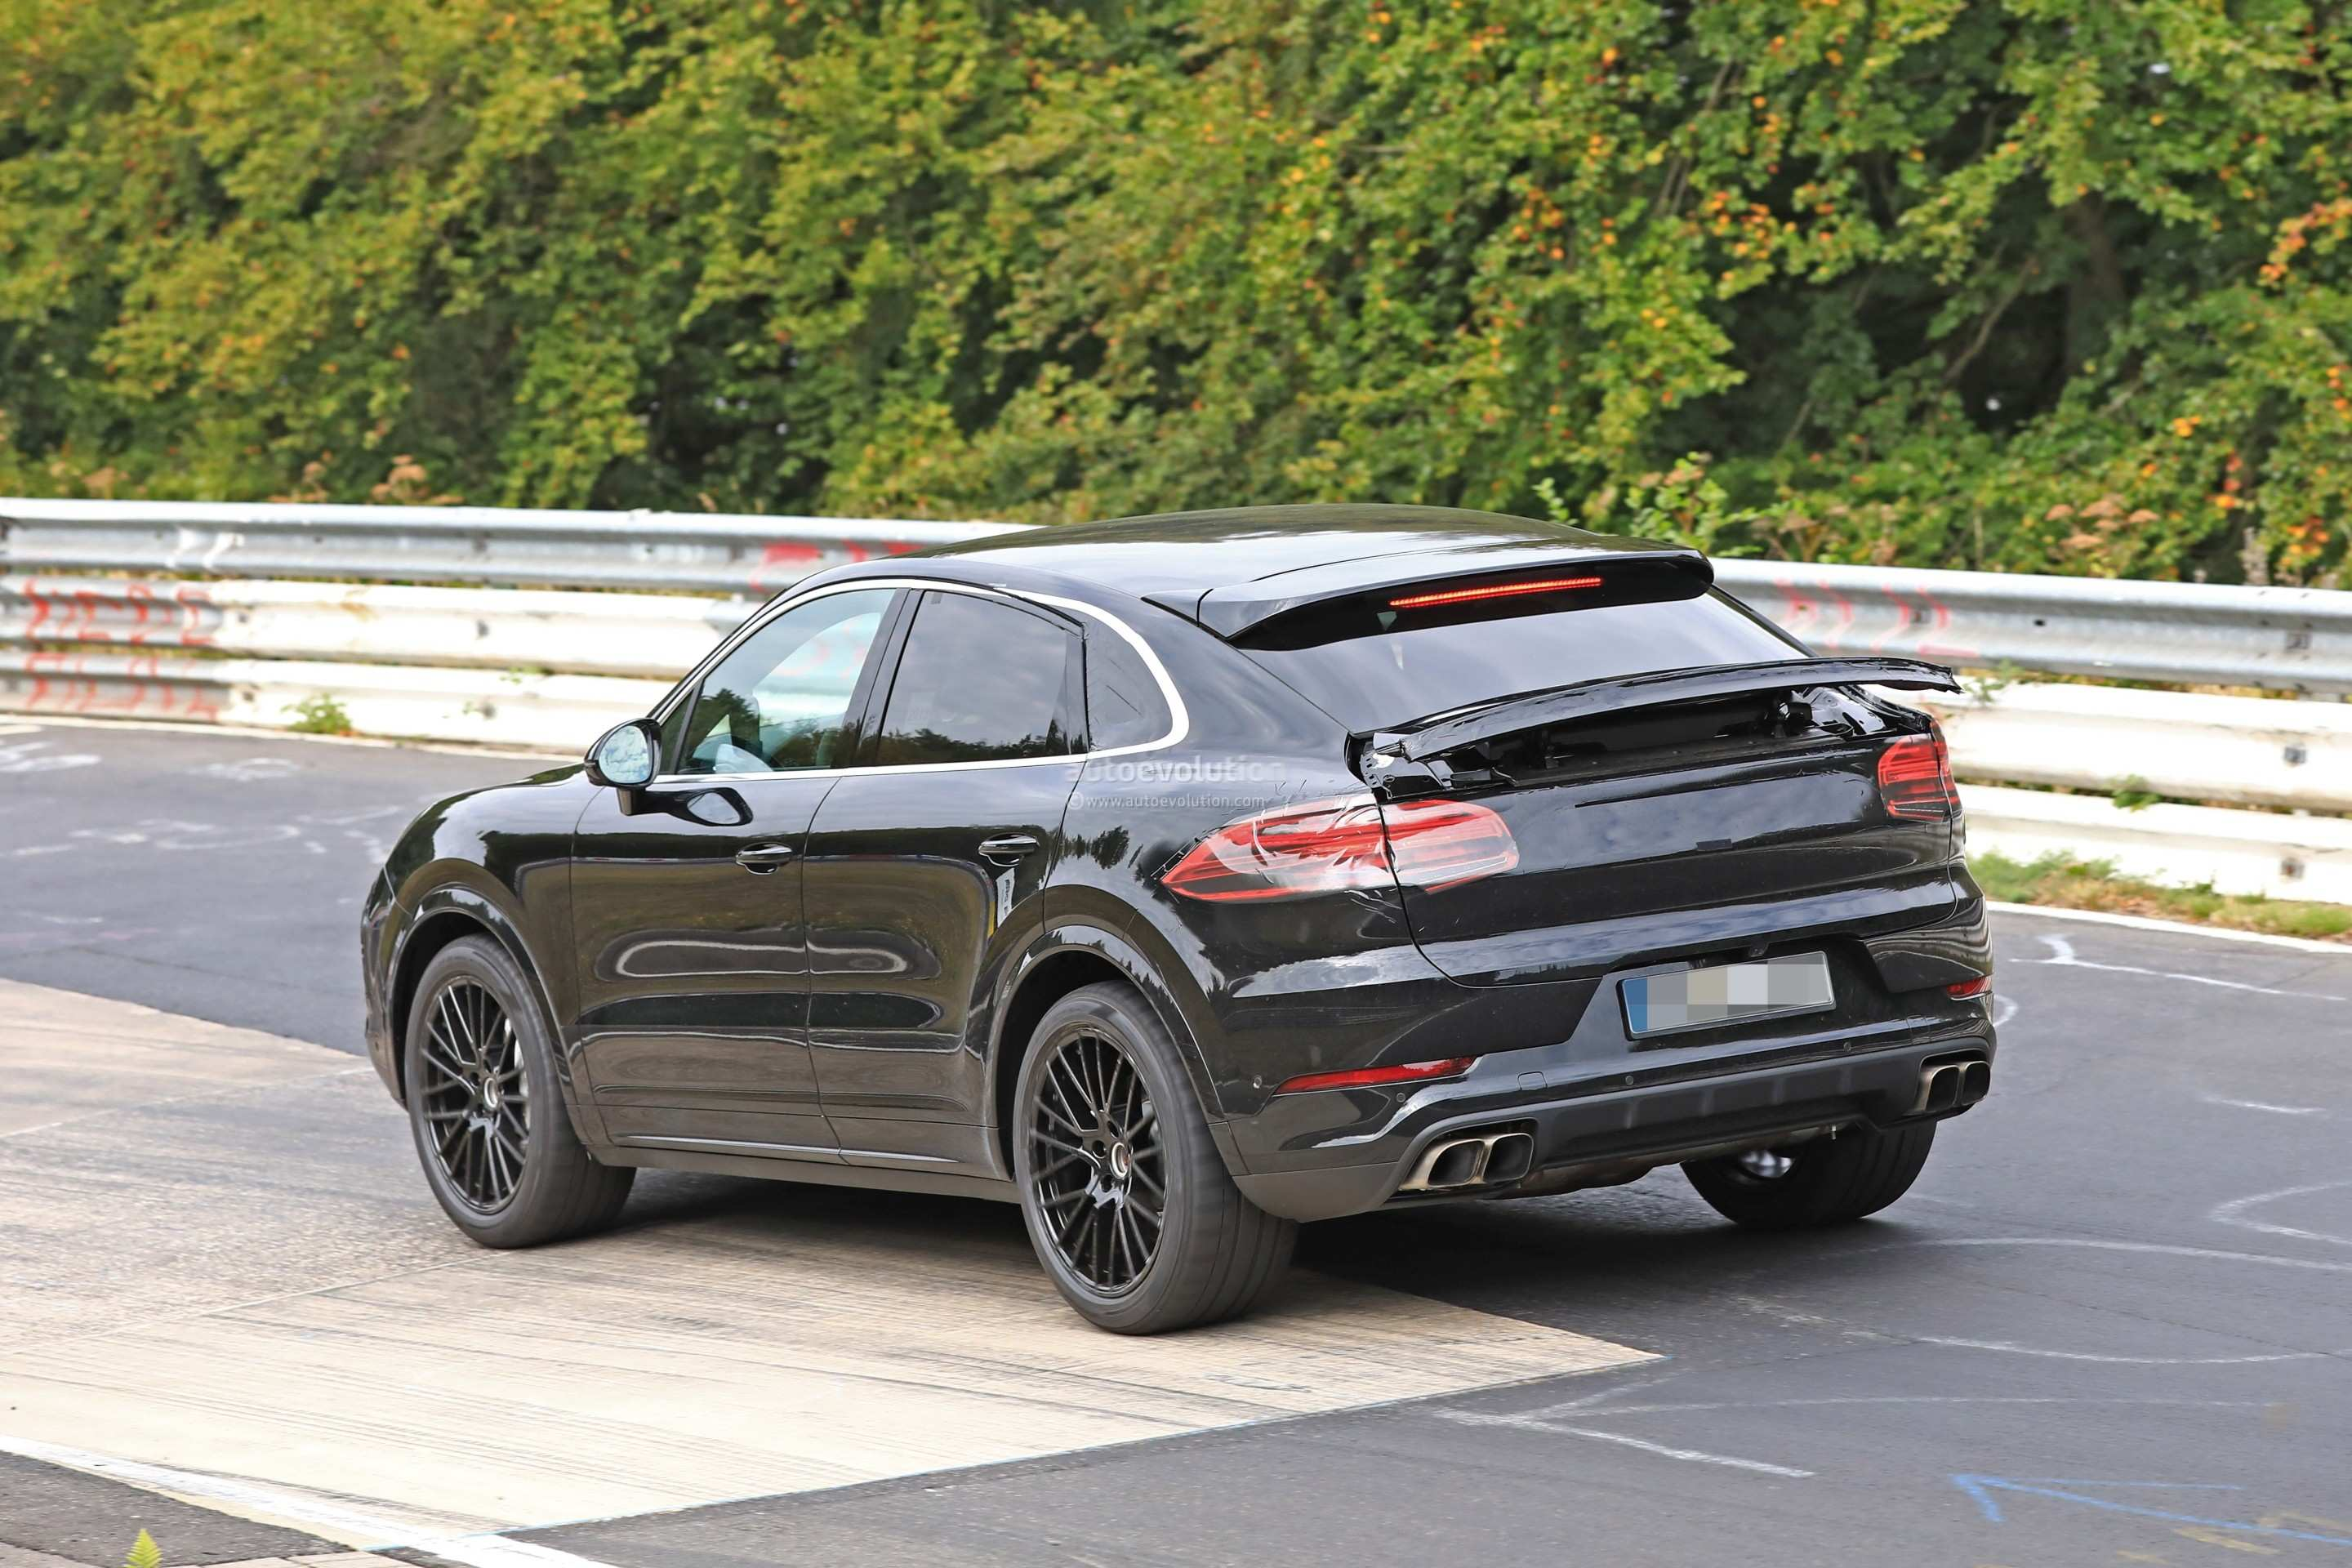 72 Best Review 2020 Porsche Suv Price with 2020 Porsche Suv